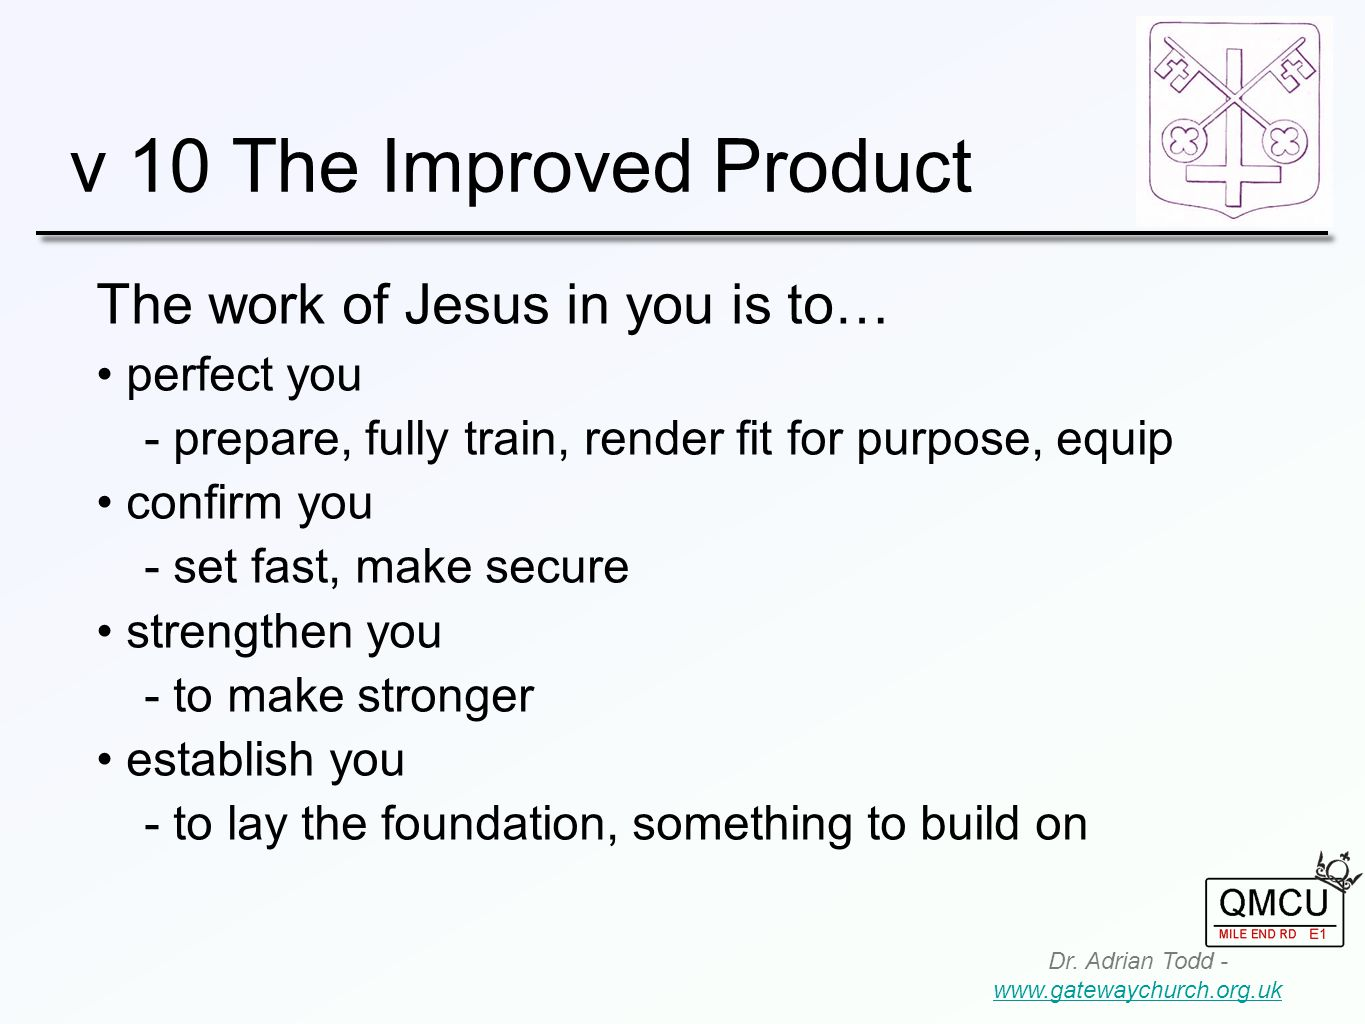 v 10 The Improved Product Dr. Adrian Todd - www.gatewaychurch.org.uk www.gatewaychurch.org.uk The work of Jesus in you is to… perfect you  prepare, f